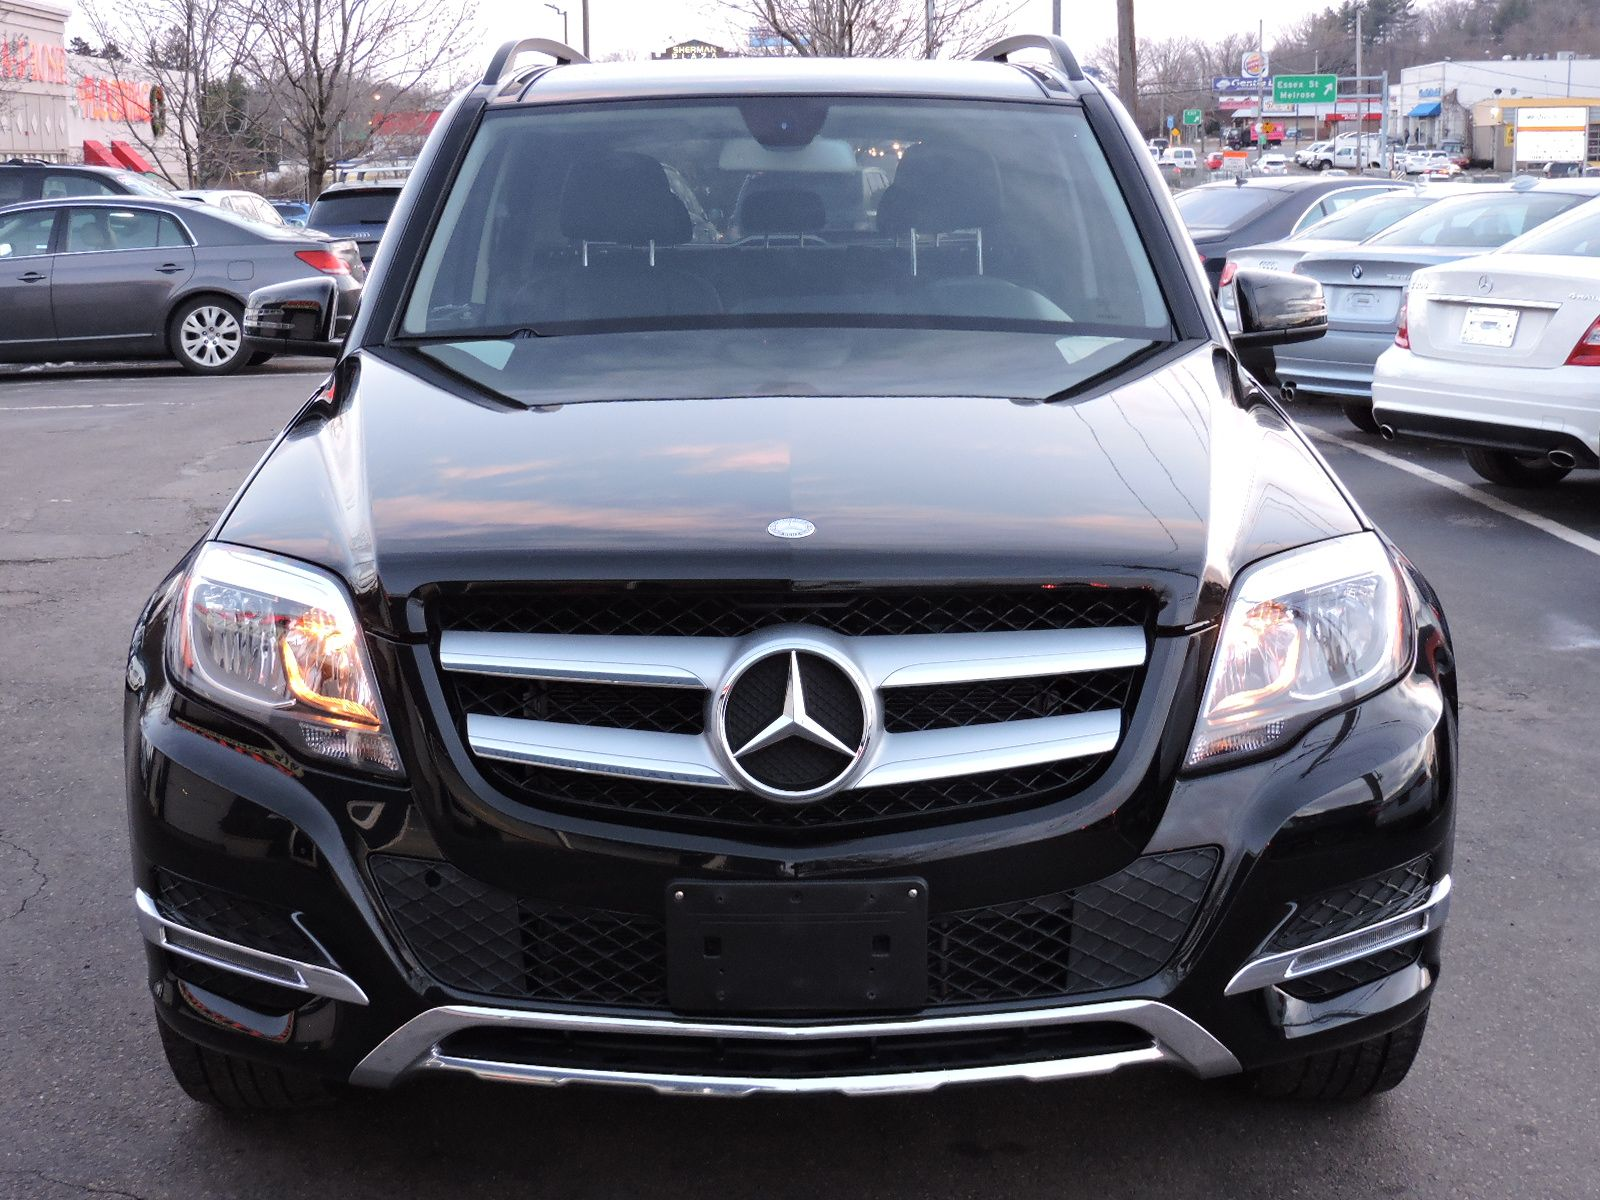 used 2014 mercedes benz glk class techpwr tail gate at auto house usa saugus. Black Bedroom Furniture Sets. Home Design Ideas